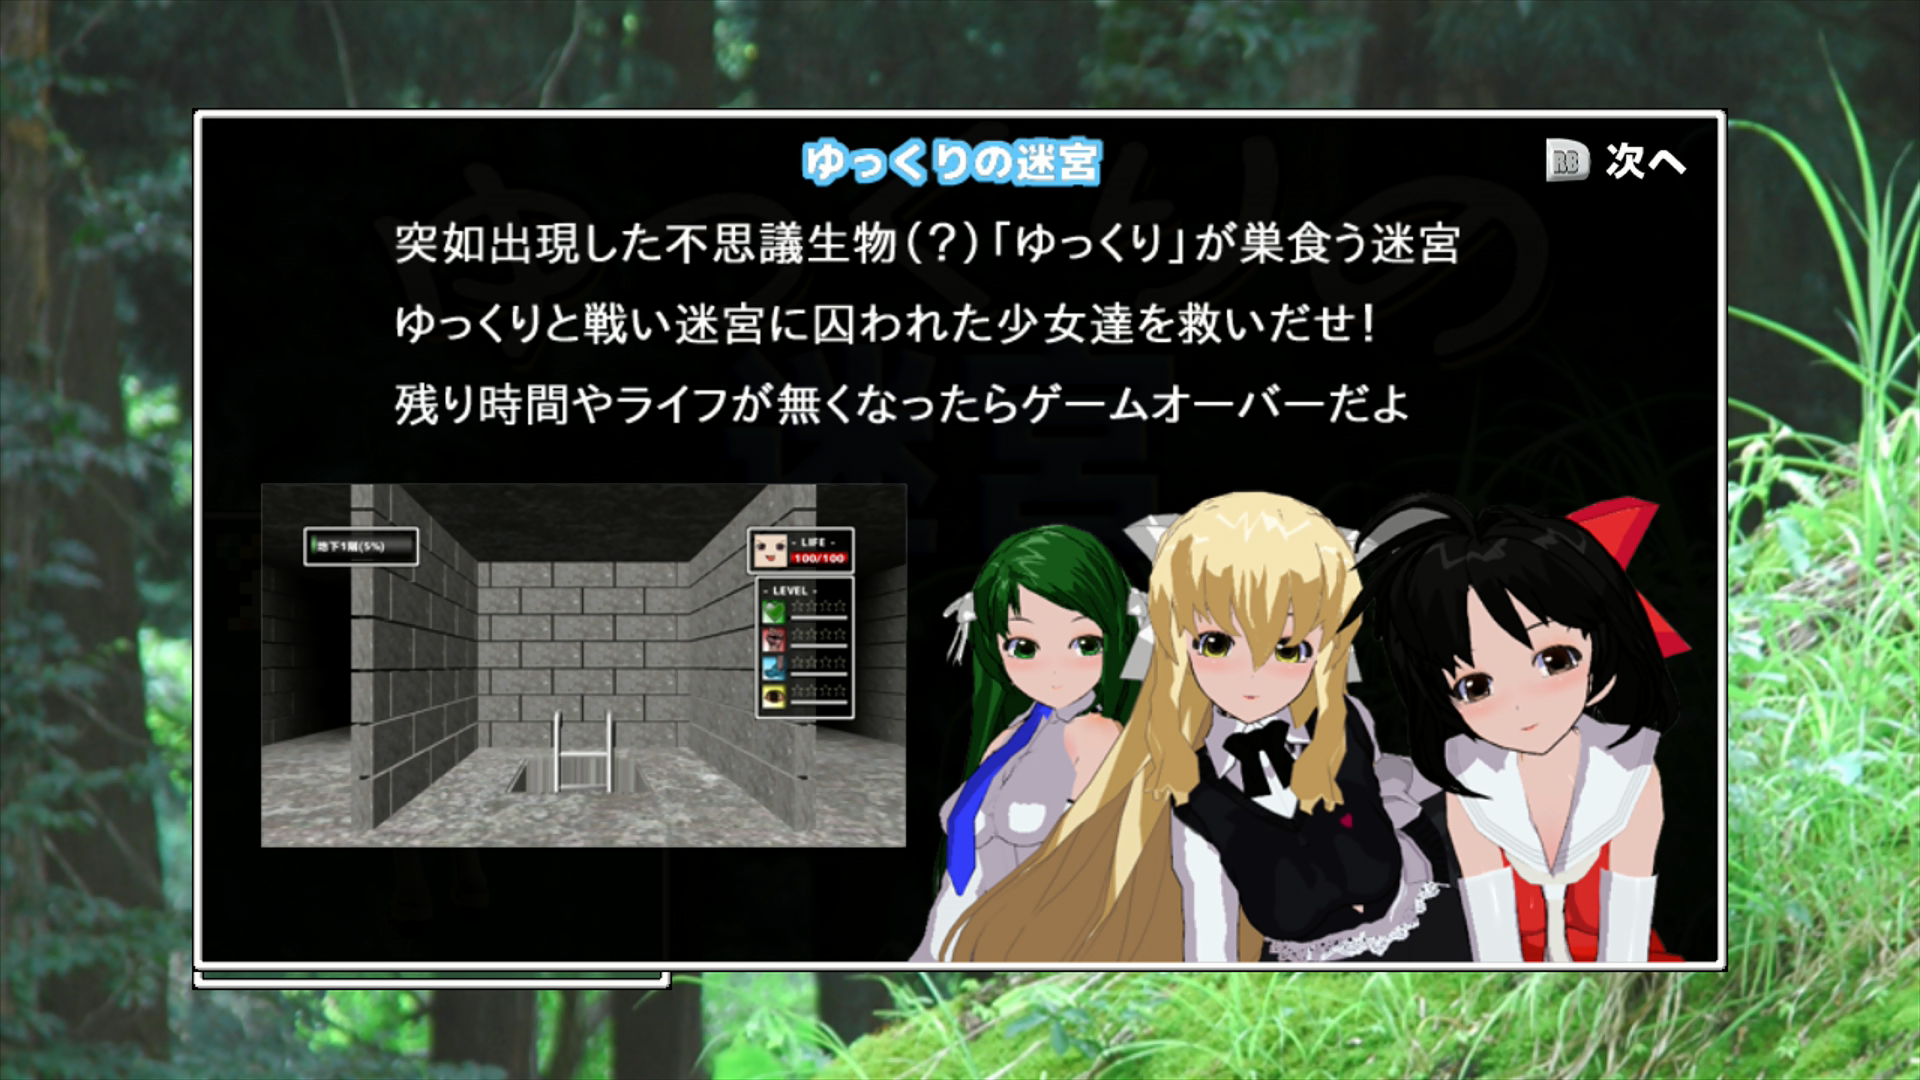 Yukkuri no Meikyū Xbox 360 In-game instructions. Completely in Japanese, but it isn't hard to figure out.